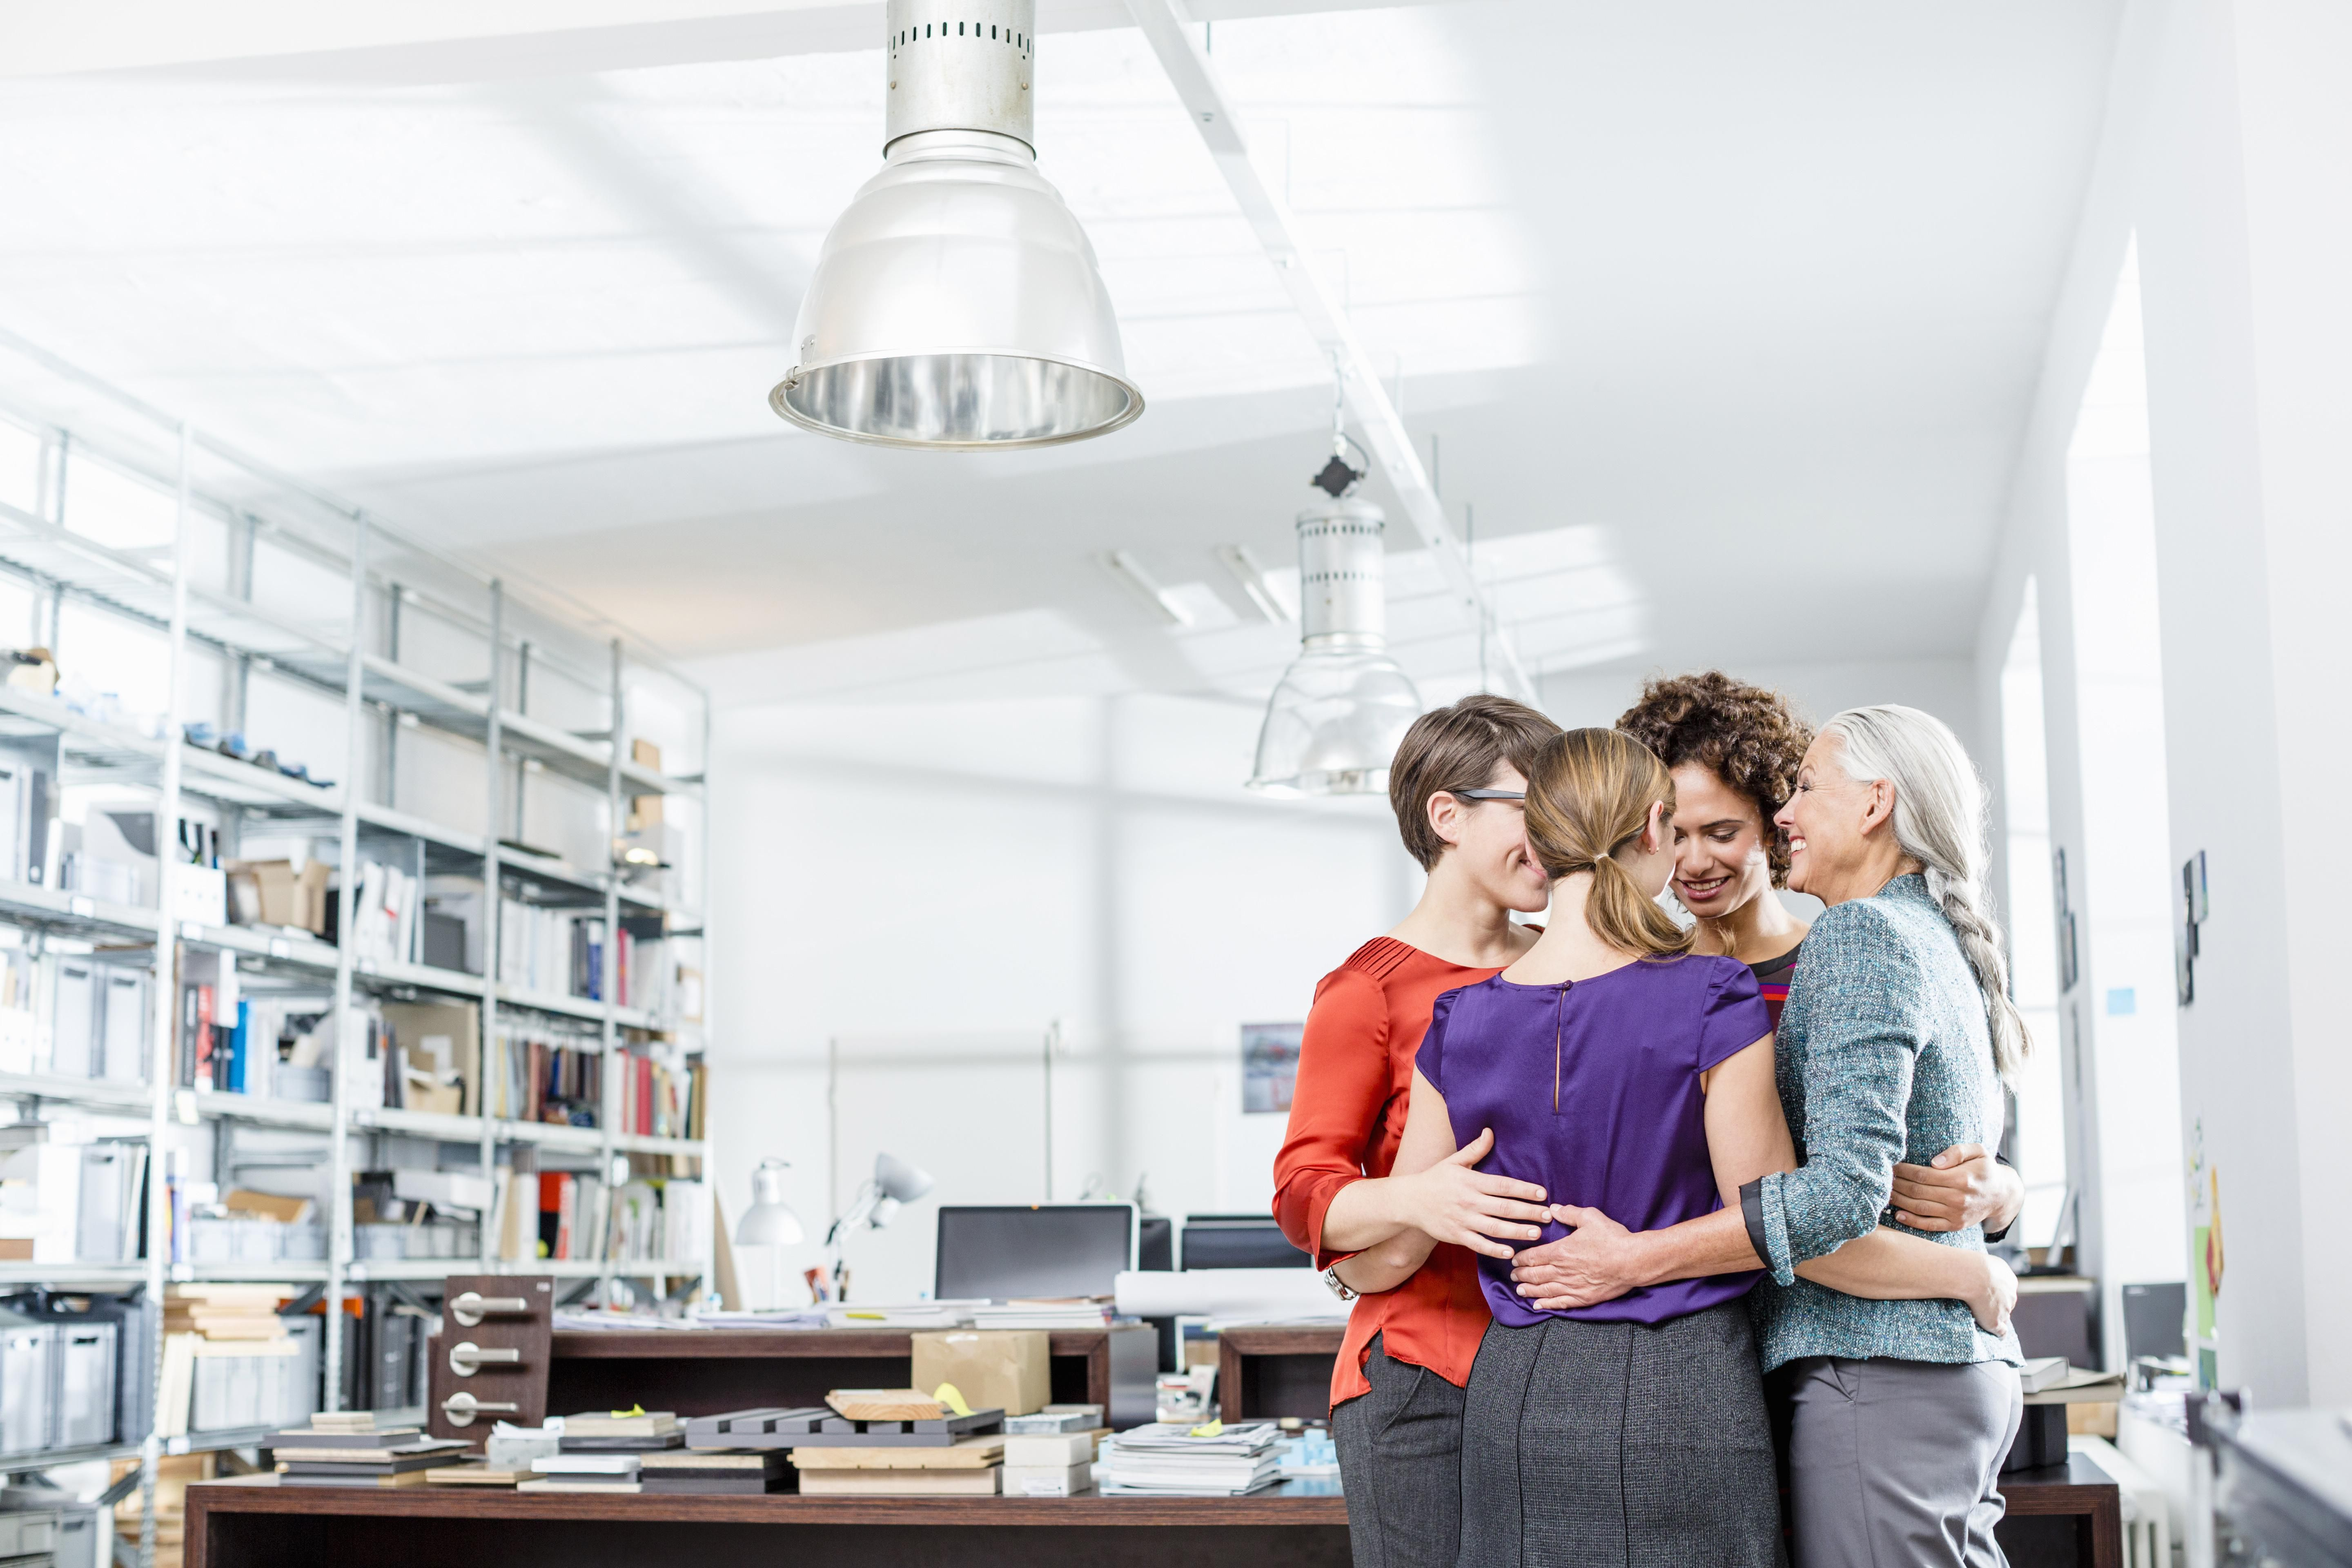 the importance of workplace decisions Discover the ways diversity in the workplace  better decisions through who ally themselves with both in-group and out-group newcomers is important.